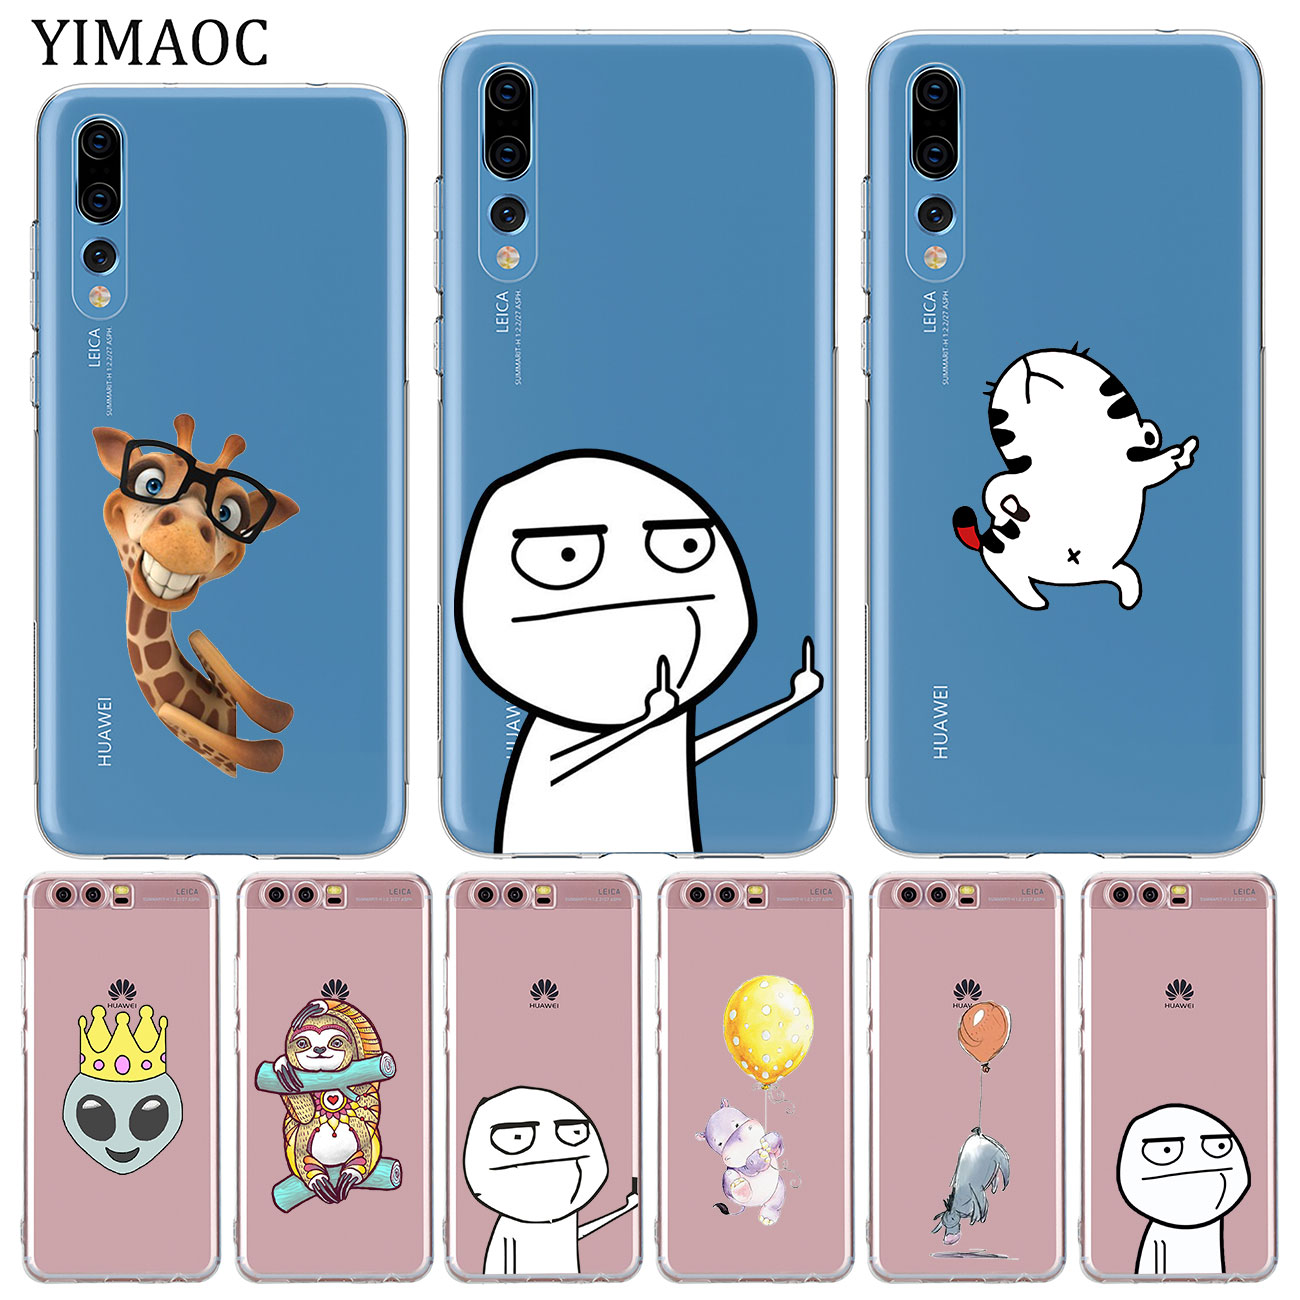 YIMAOC meme face Middle Finger Lovers Soft Silicone Case for Huawei P30 P20 Pro P10 P8 P9 Lite 2017 2016 2015 P smart Z 2019 image